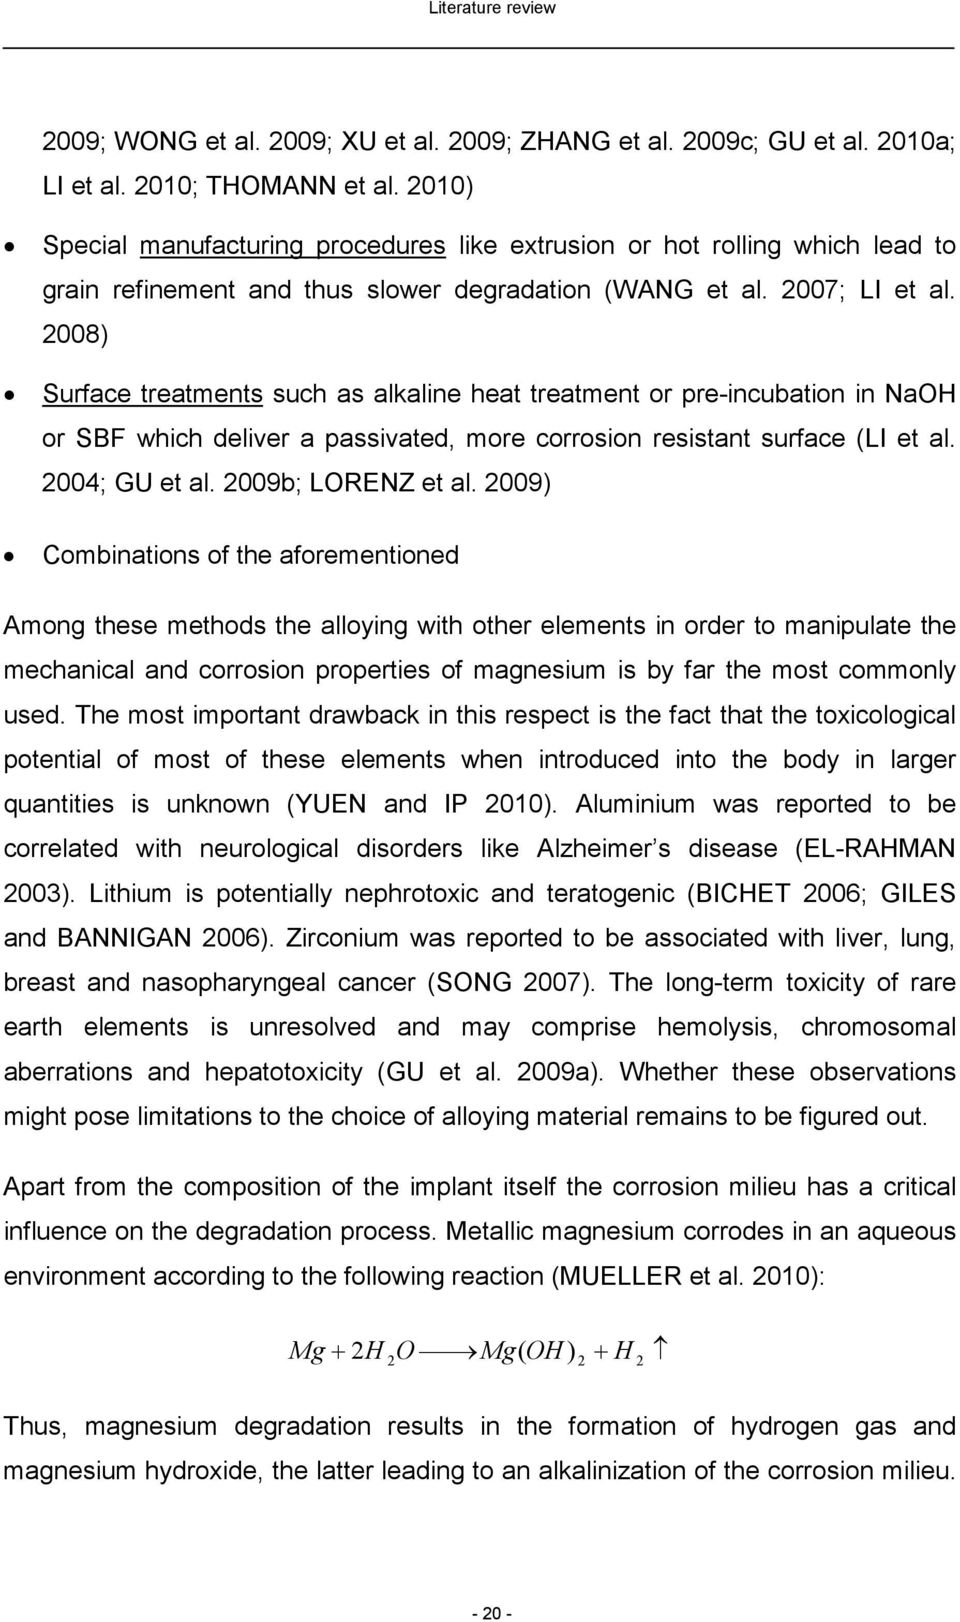 2008) Surface treatments such as alkaline heat treatment or pre-incubation in NaOH or SBF which deliver a passivated, more corrosion resistant surface (LI et al. 2004; GU et al. 2009b; LORENZ et al.